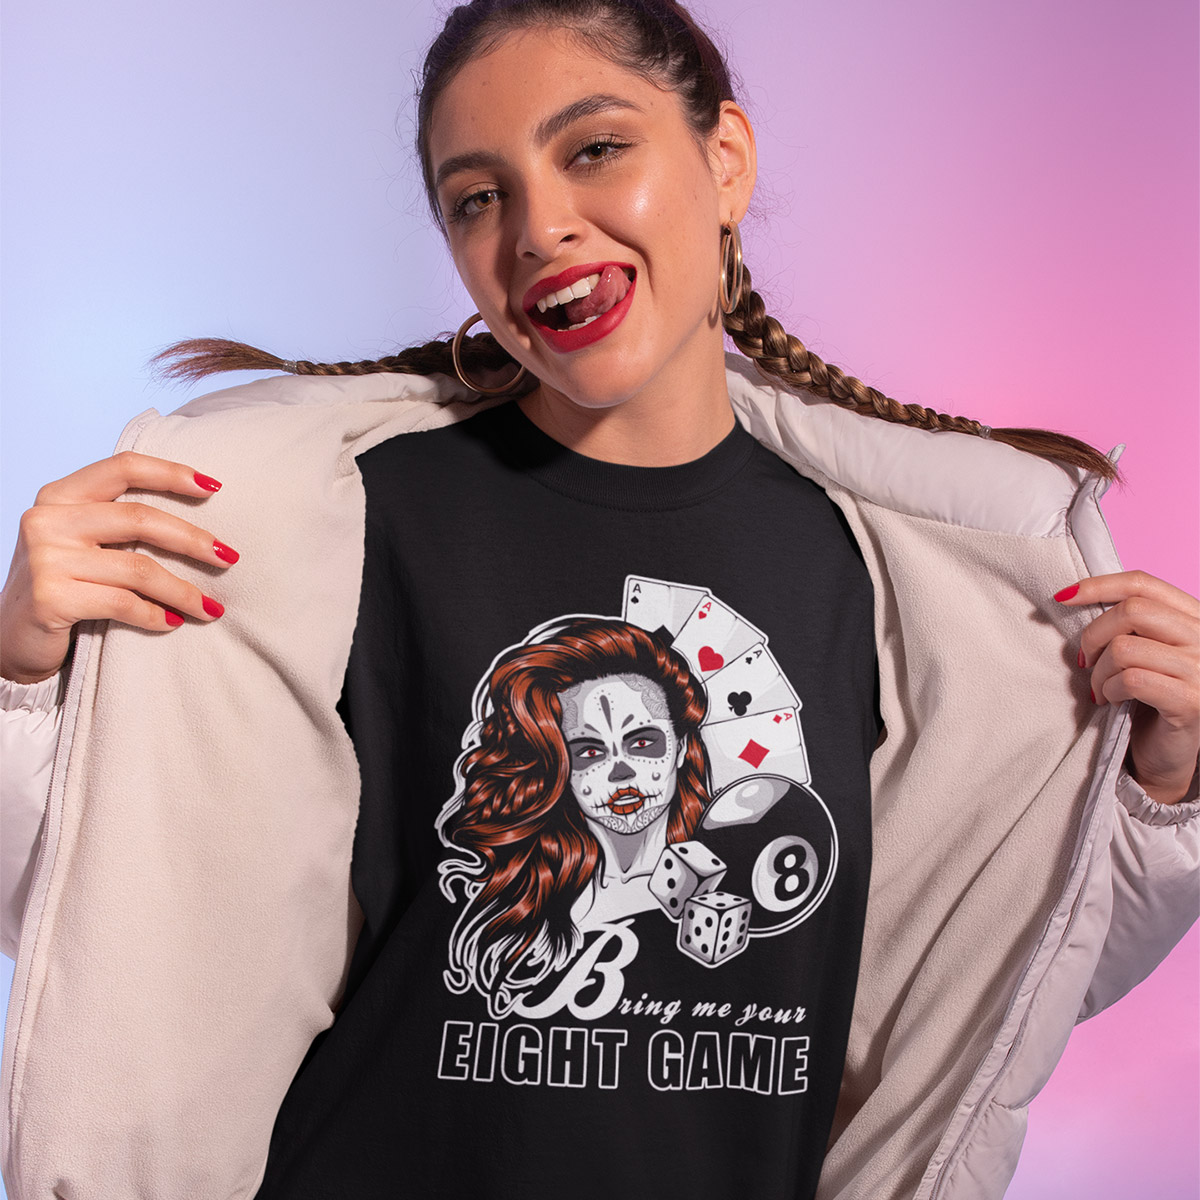 Bring Me Your Eight Game Poker T-Shirt